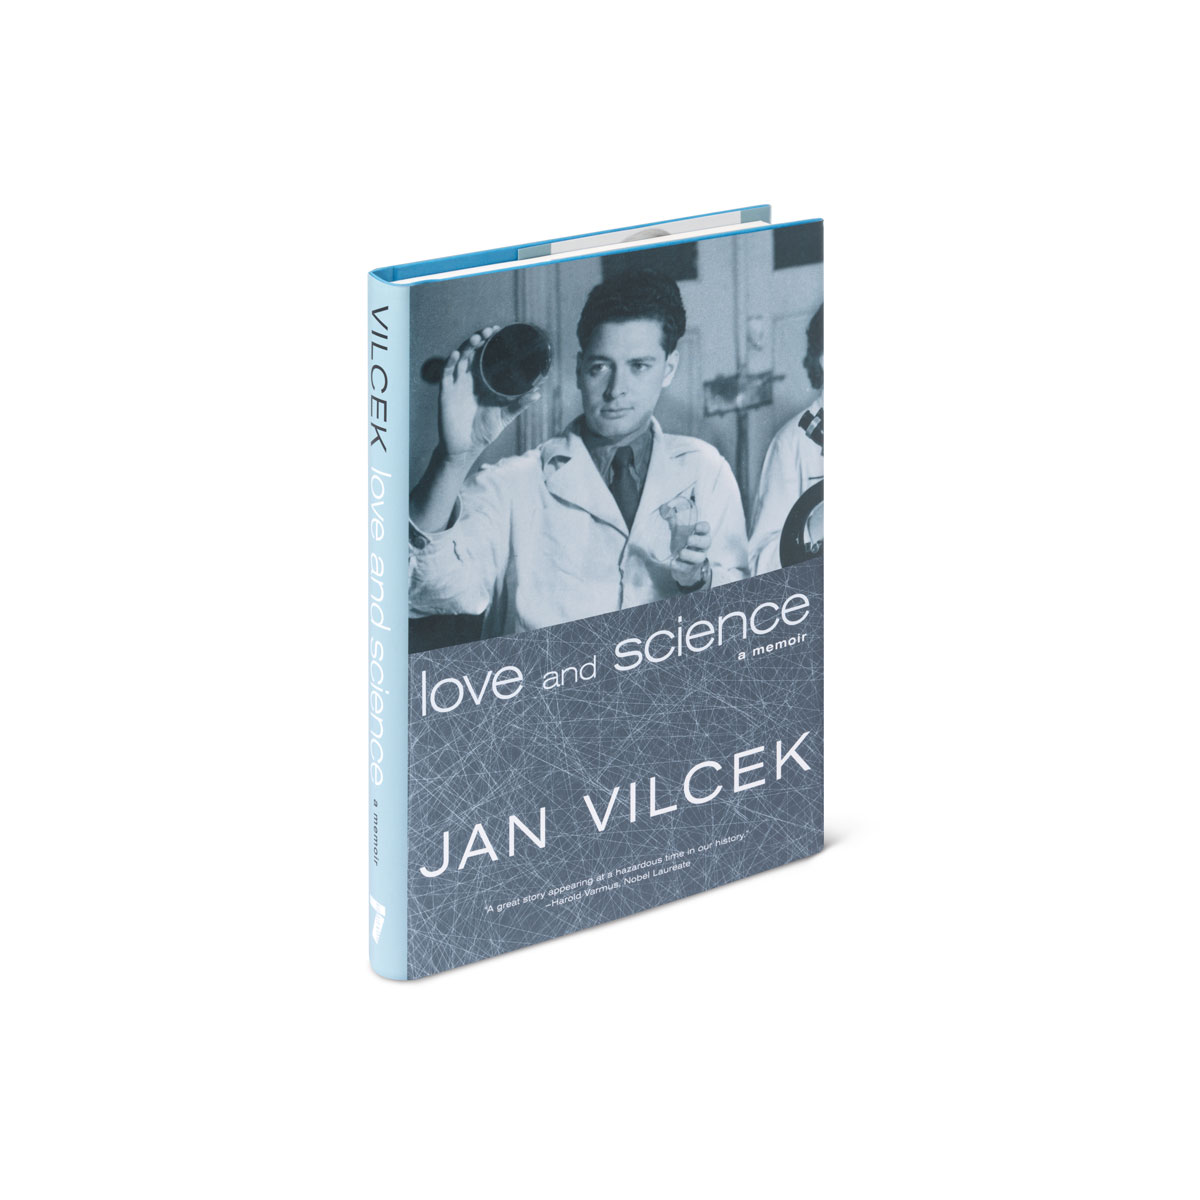 Love & Science by Jan Vilcek book cover and spine